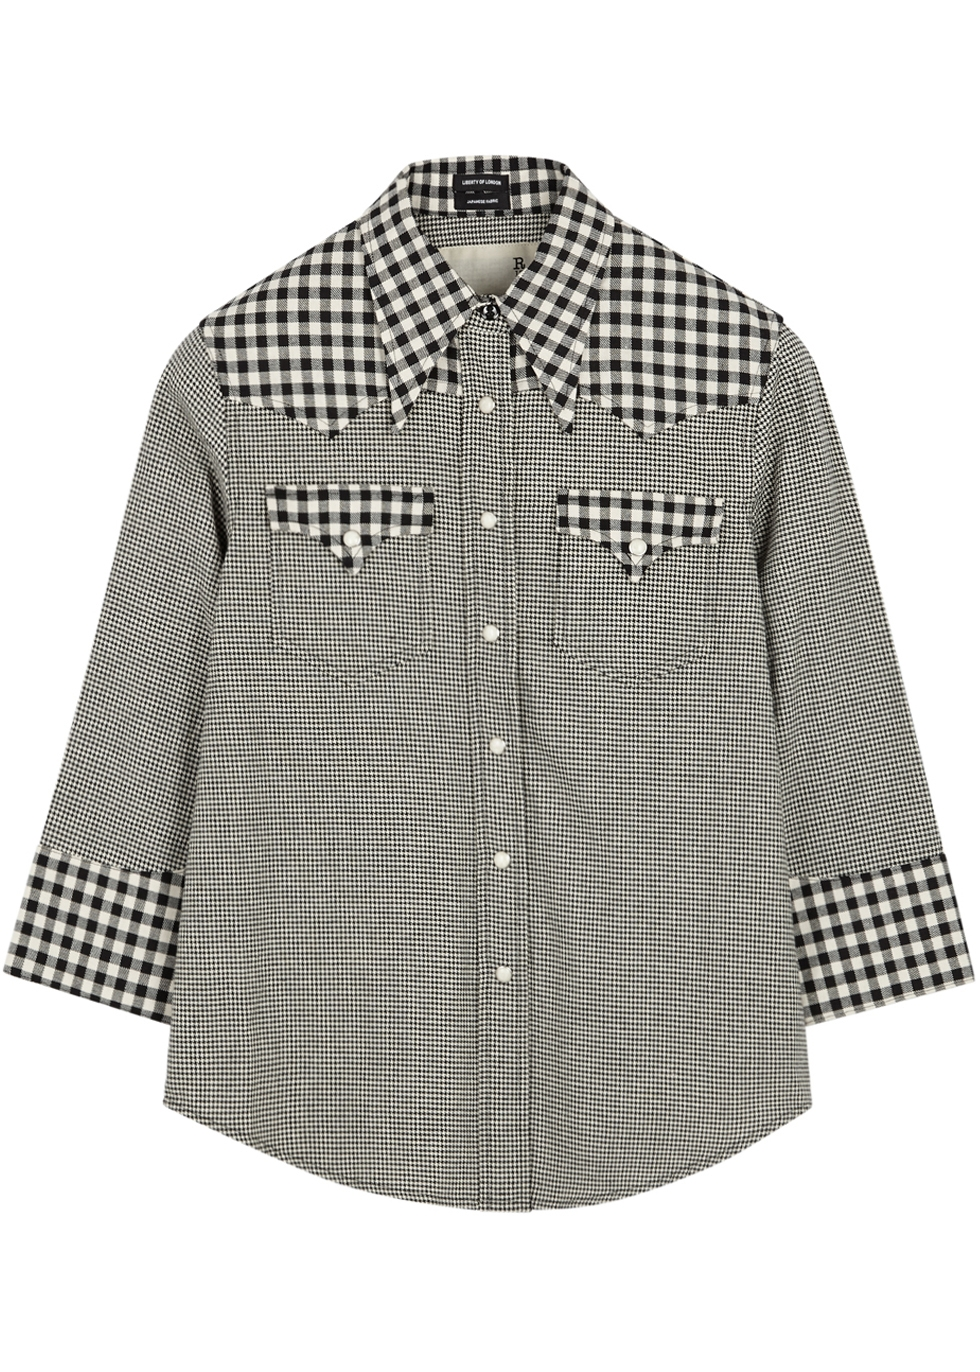 MONOCHROME COTTON SHIRT